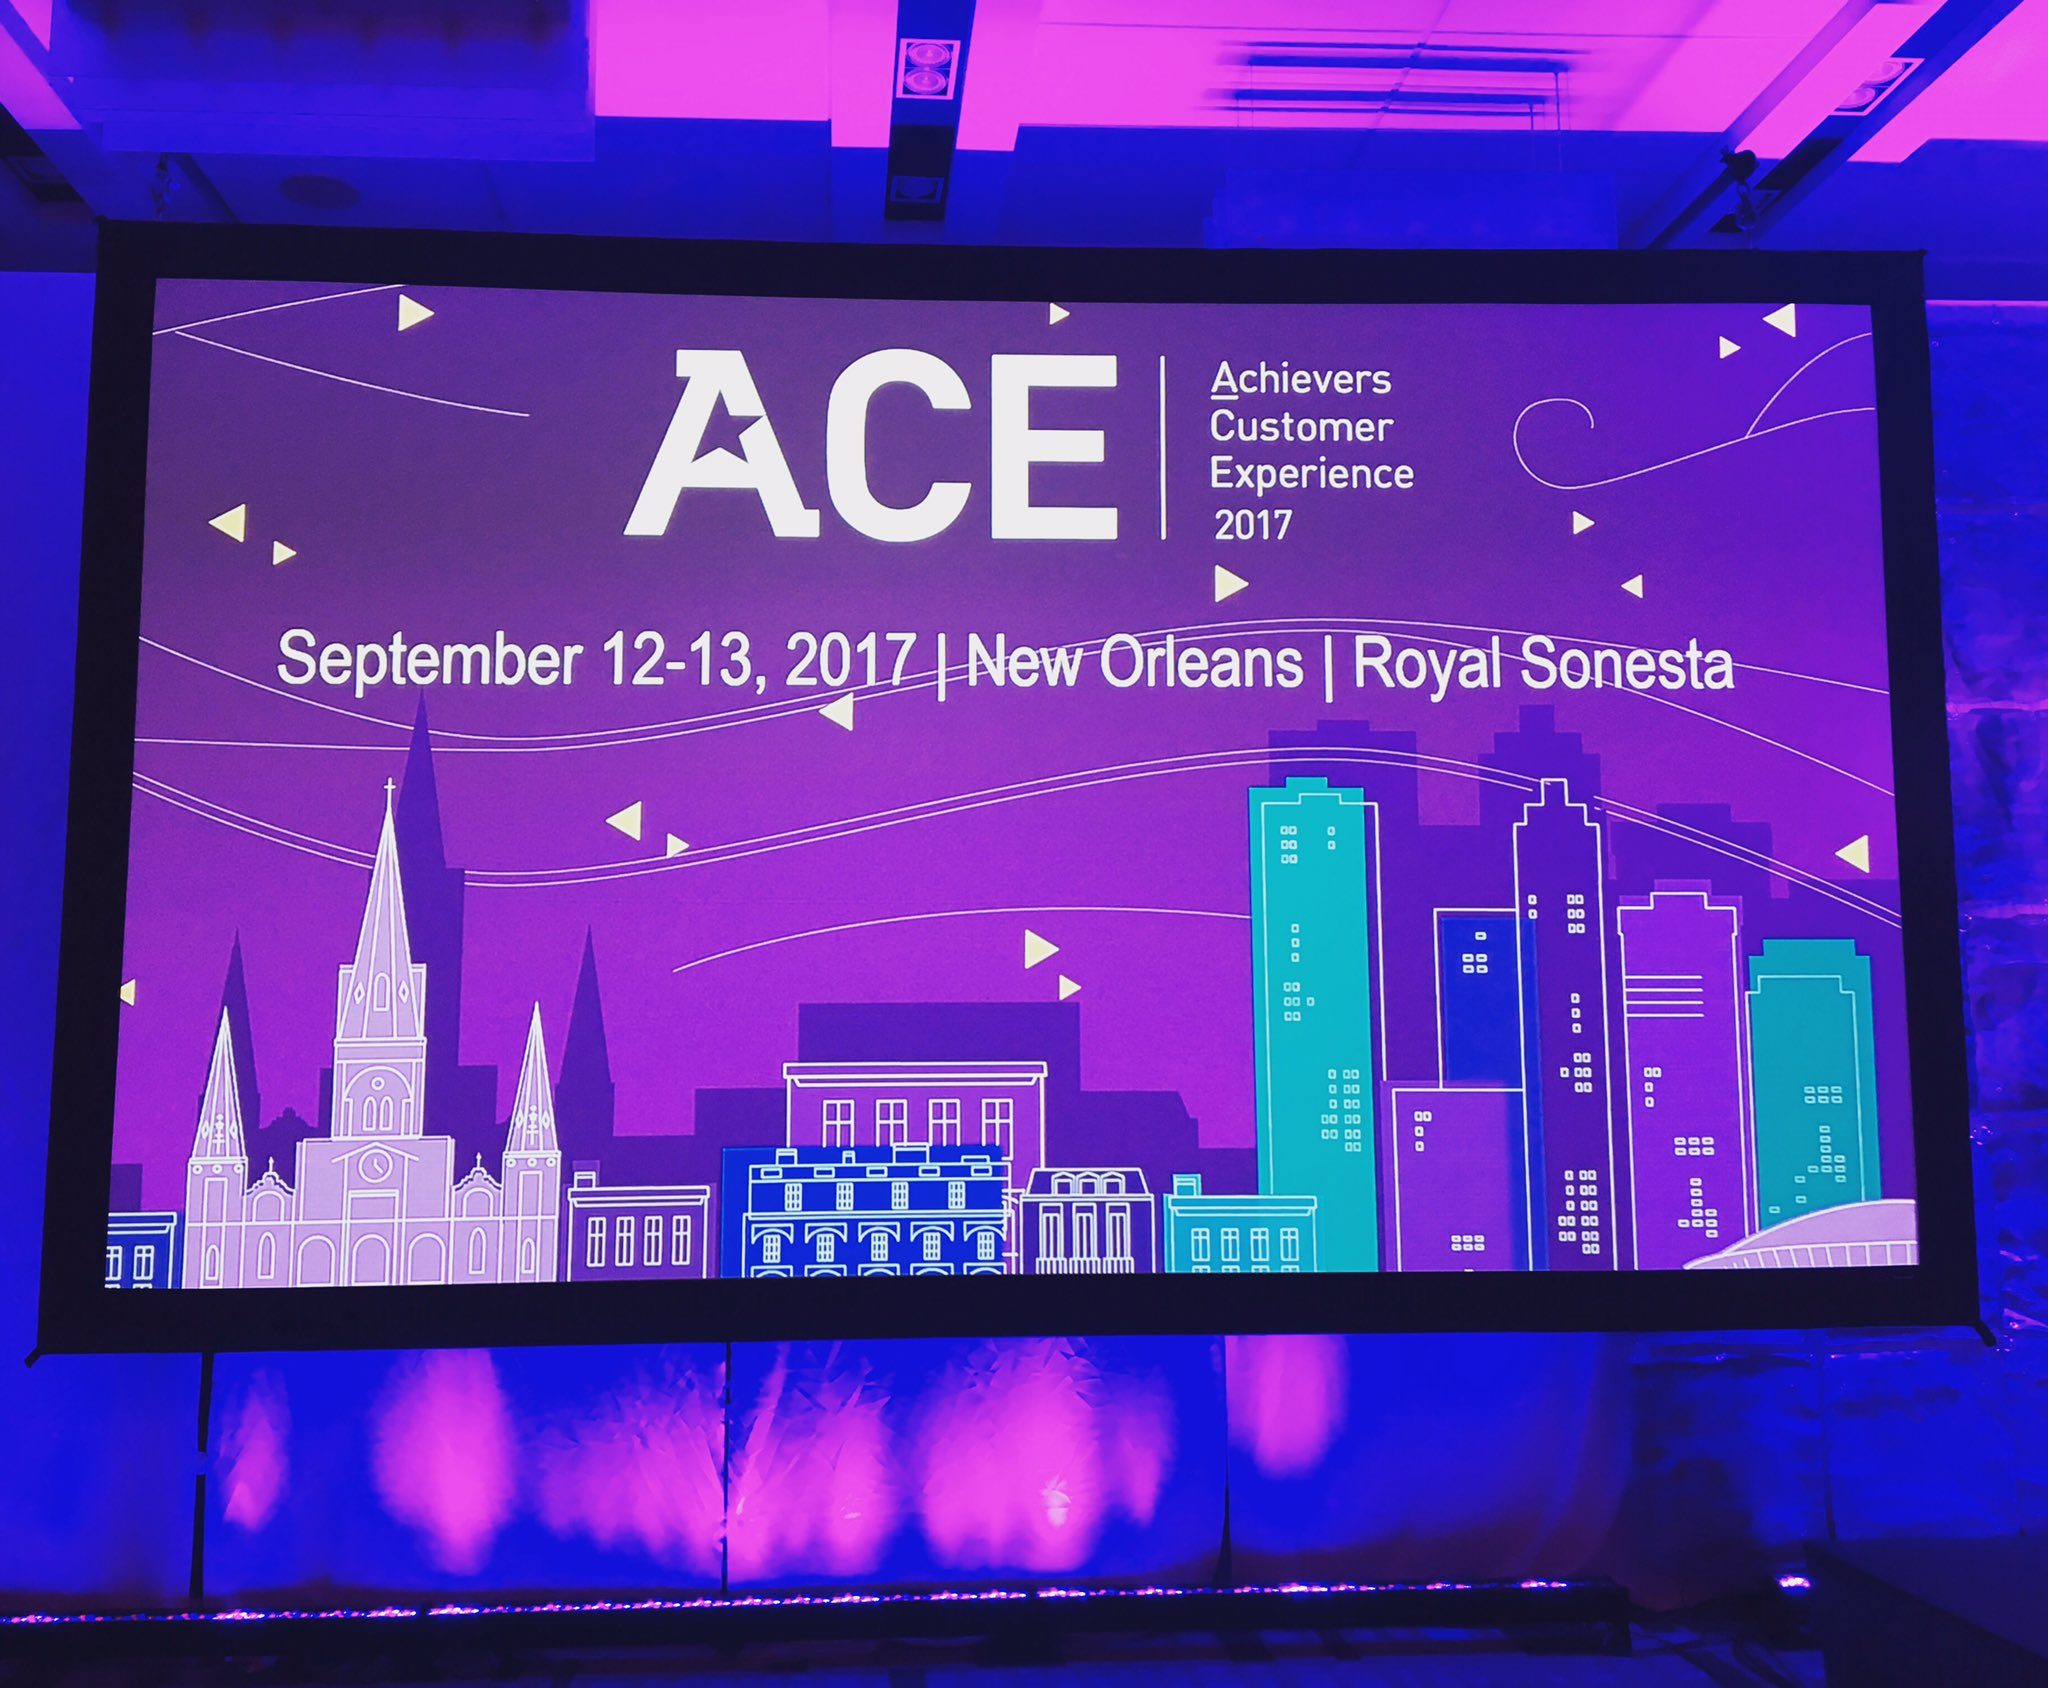 Big news: ACE 2017 is going to be in New Orleans! 🎉Thank you to everyone who attended & see you next year! 😄#AACE16 https://t.co/jhmlqKijmP